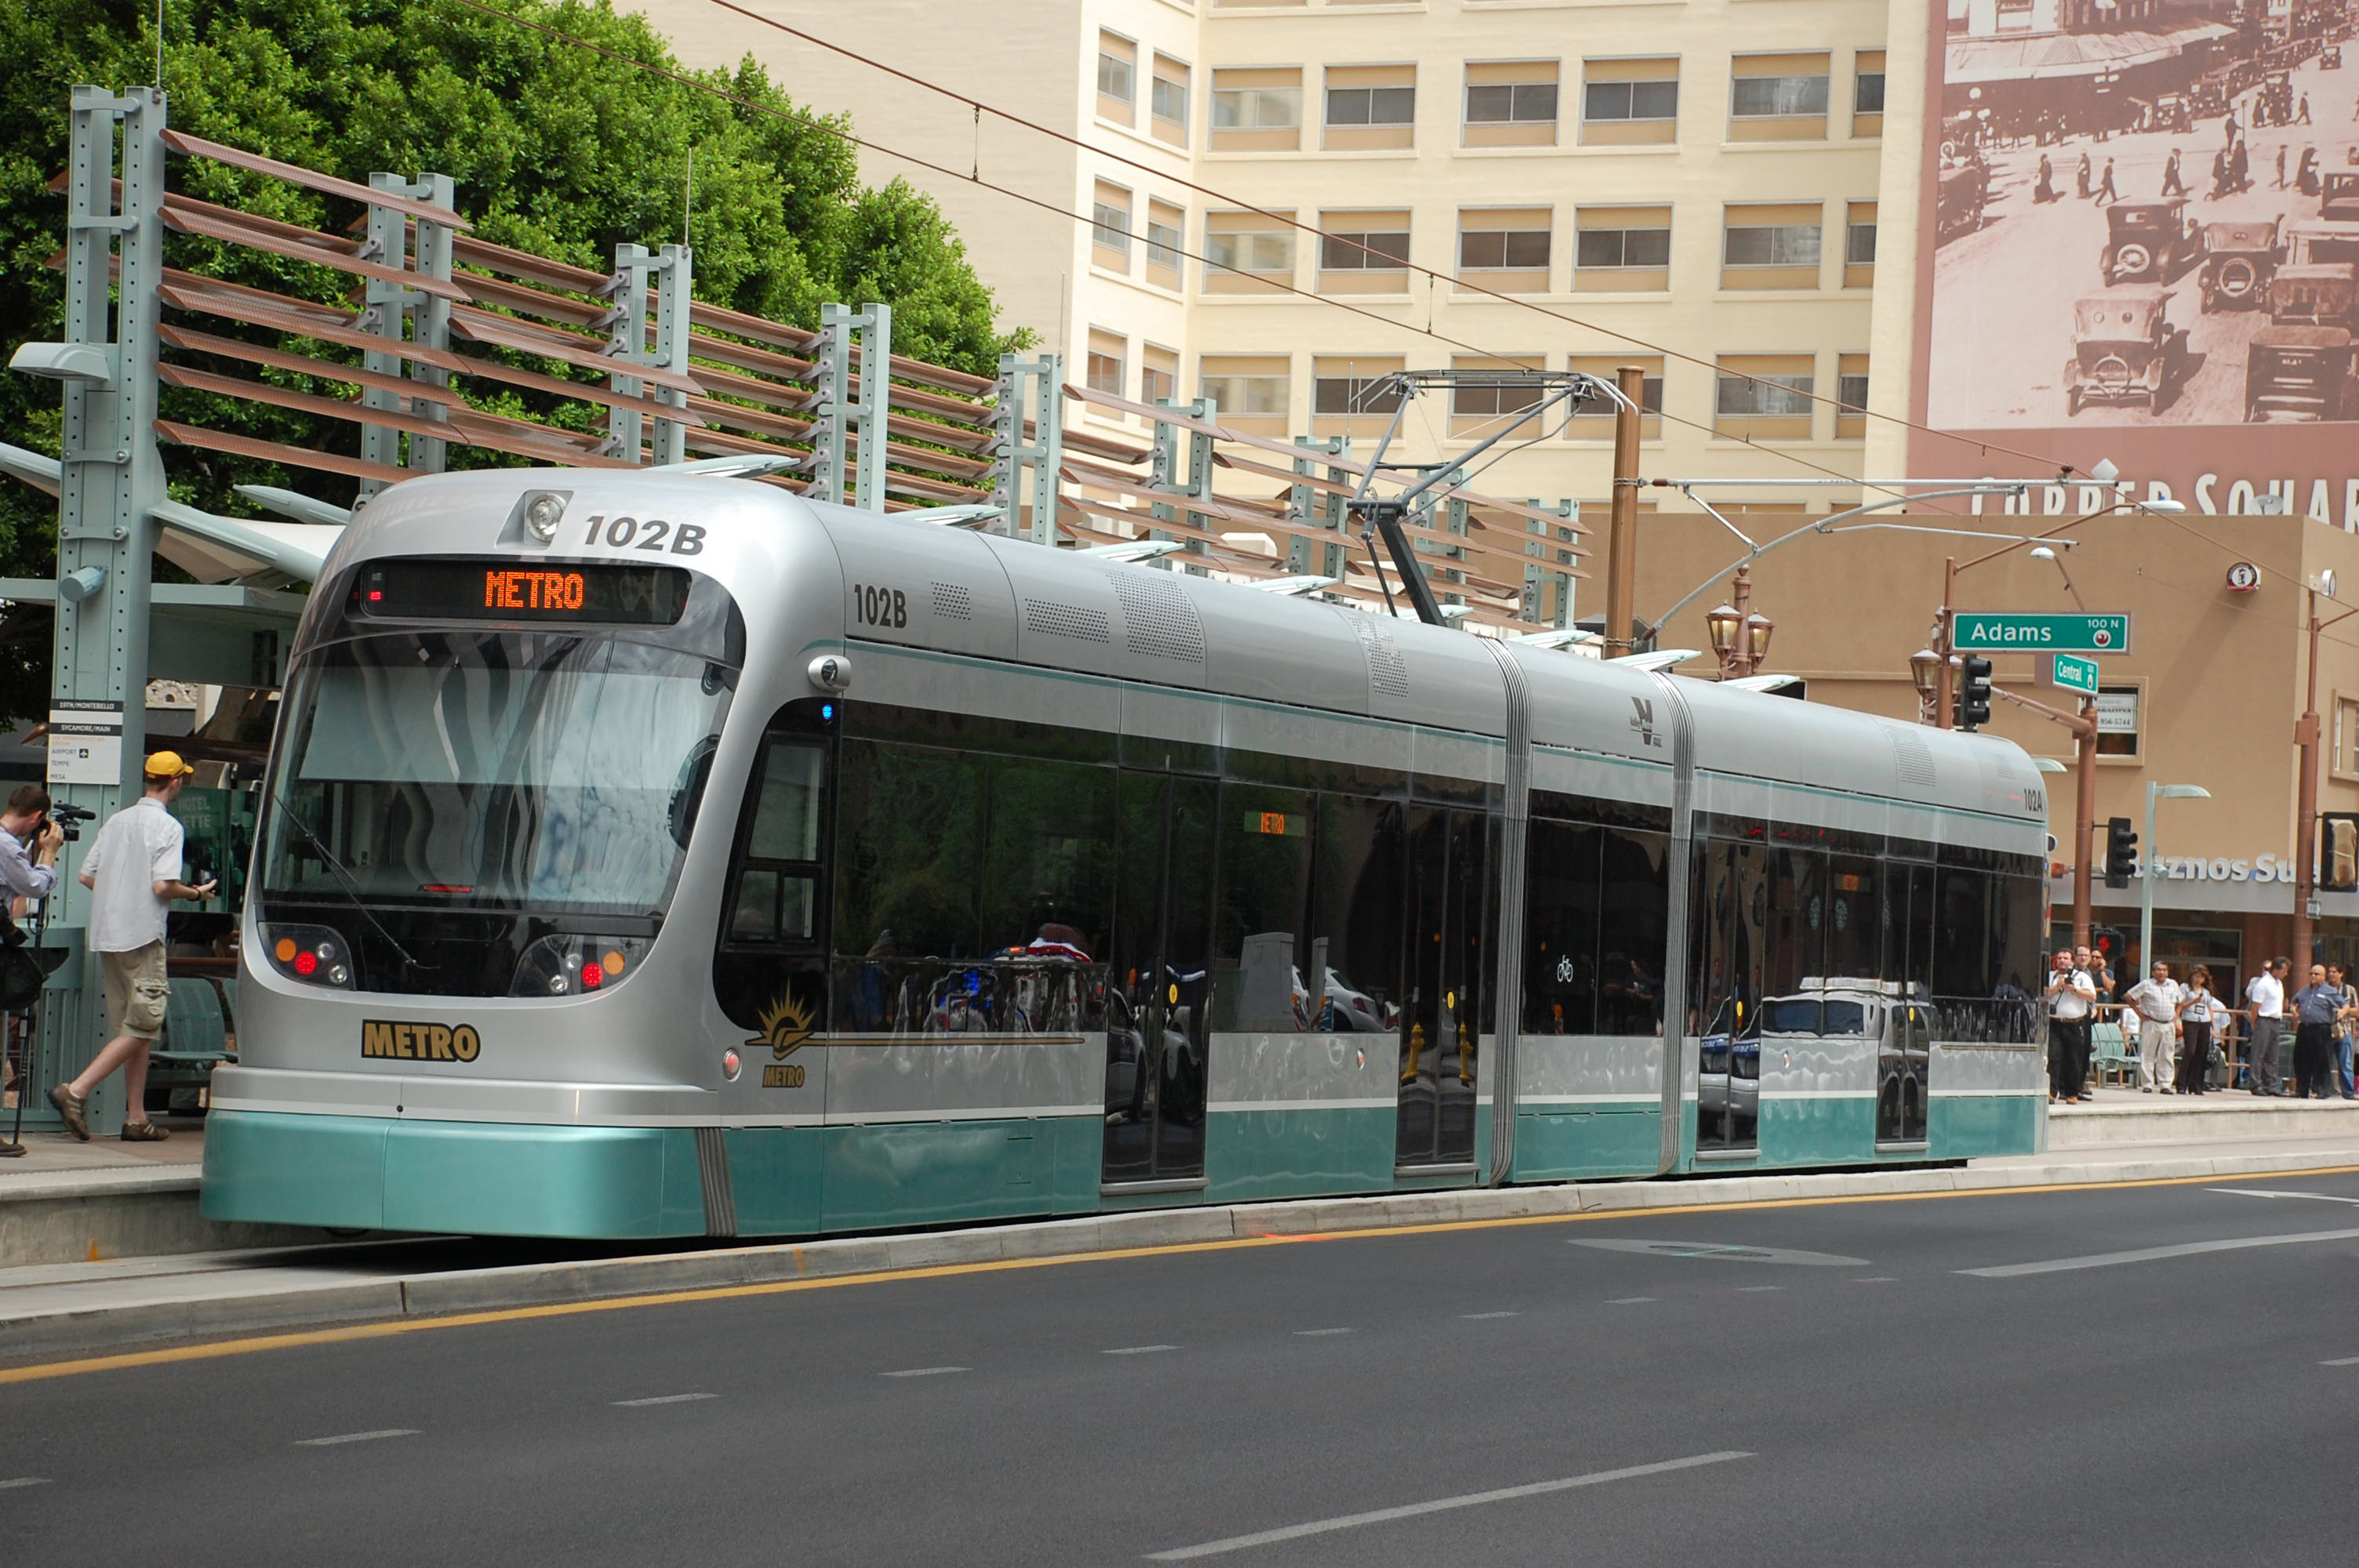 light rail prices prop 300 aims for more transit security central news 143